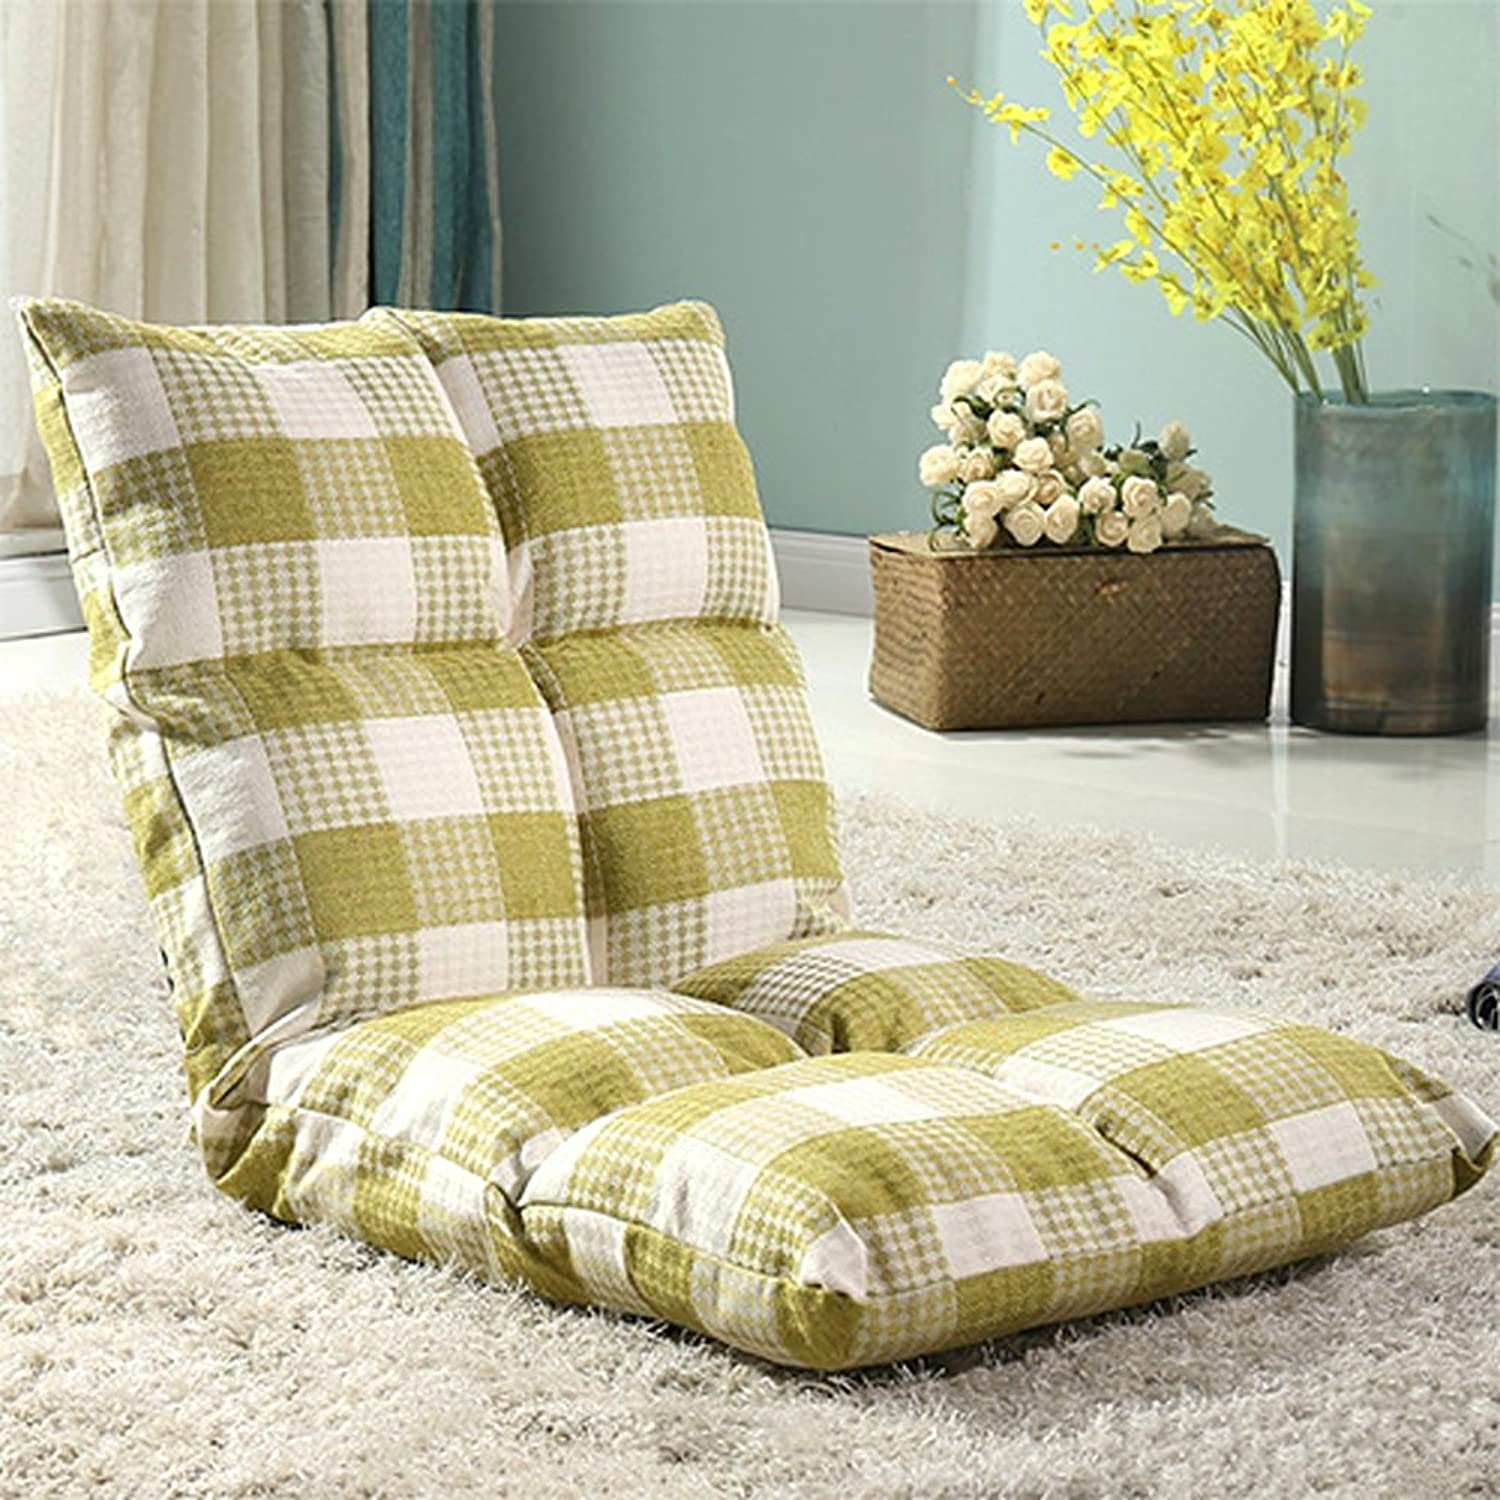 Lazy Couch Single Tatami Chair Bedroom Balcony Lounge Sofa Stylish Single Small Sofa Multifunction Armchair on The Bed Foldable Soft and Comfortable (color   Green)